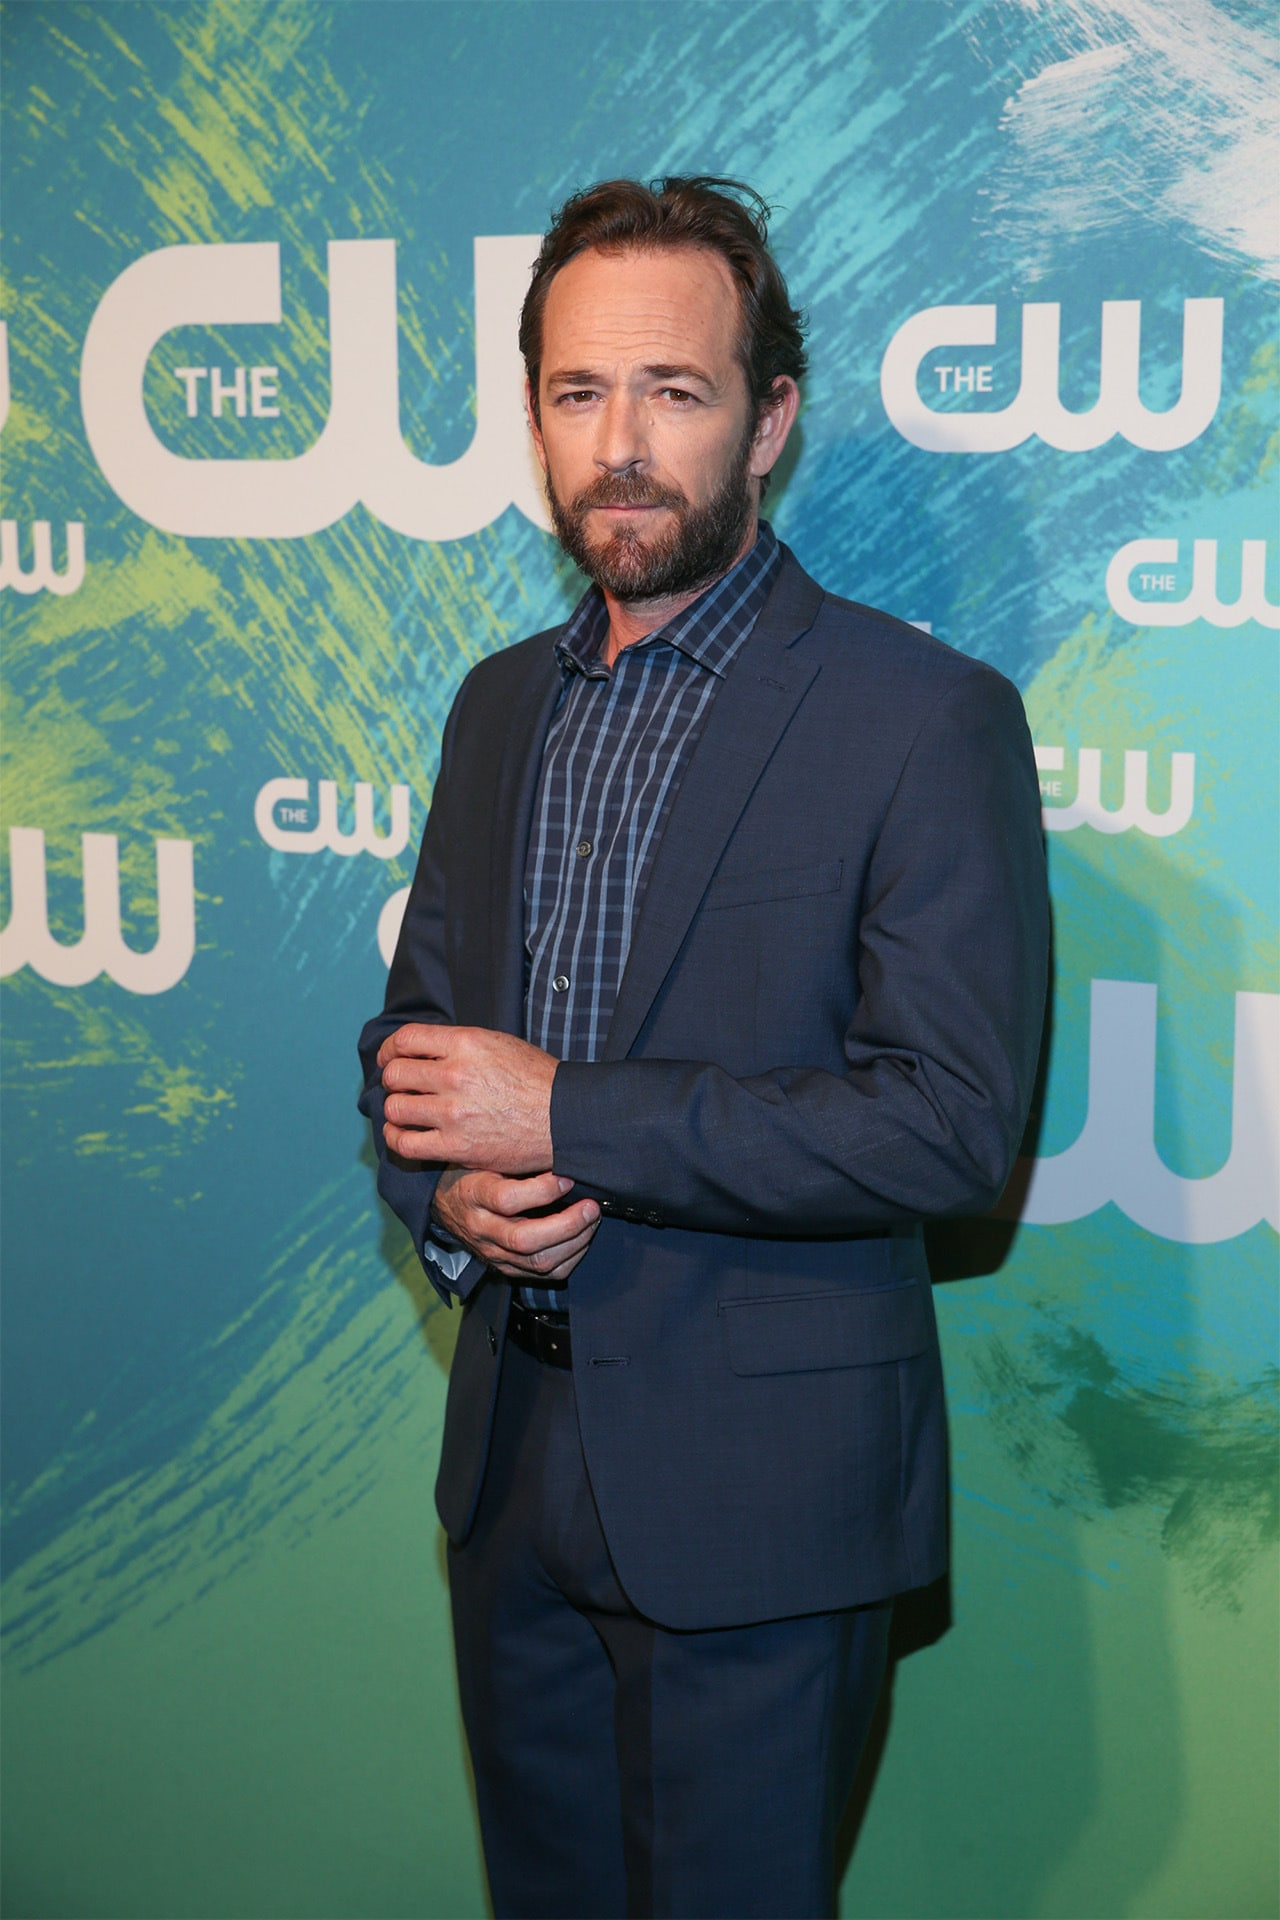 Luke Perry attends The CW Network's 2016 New York Upfront Presentation at The London Hotel on May 19, 2016 in New York City. Image credit: Rob Kim/Getty Images